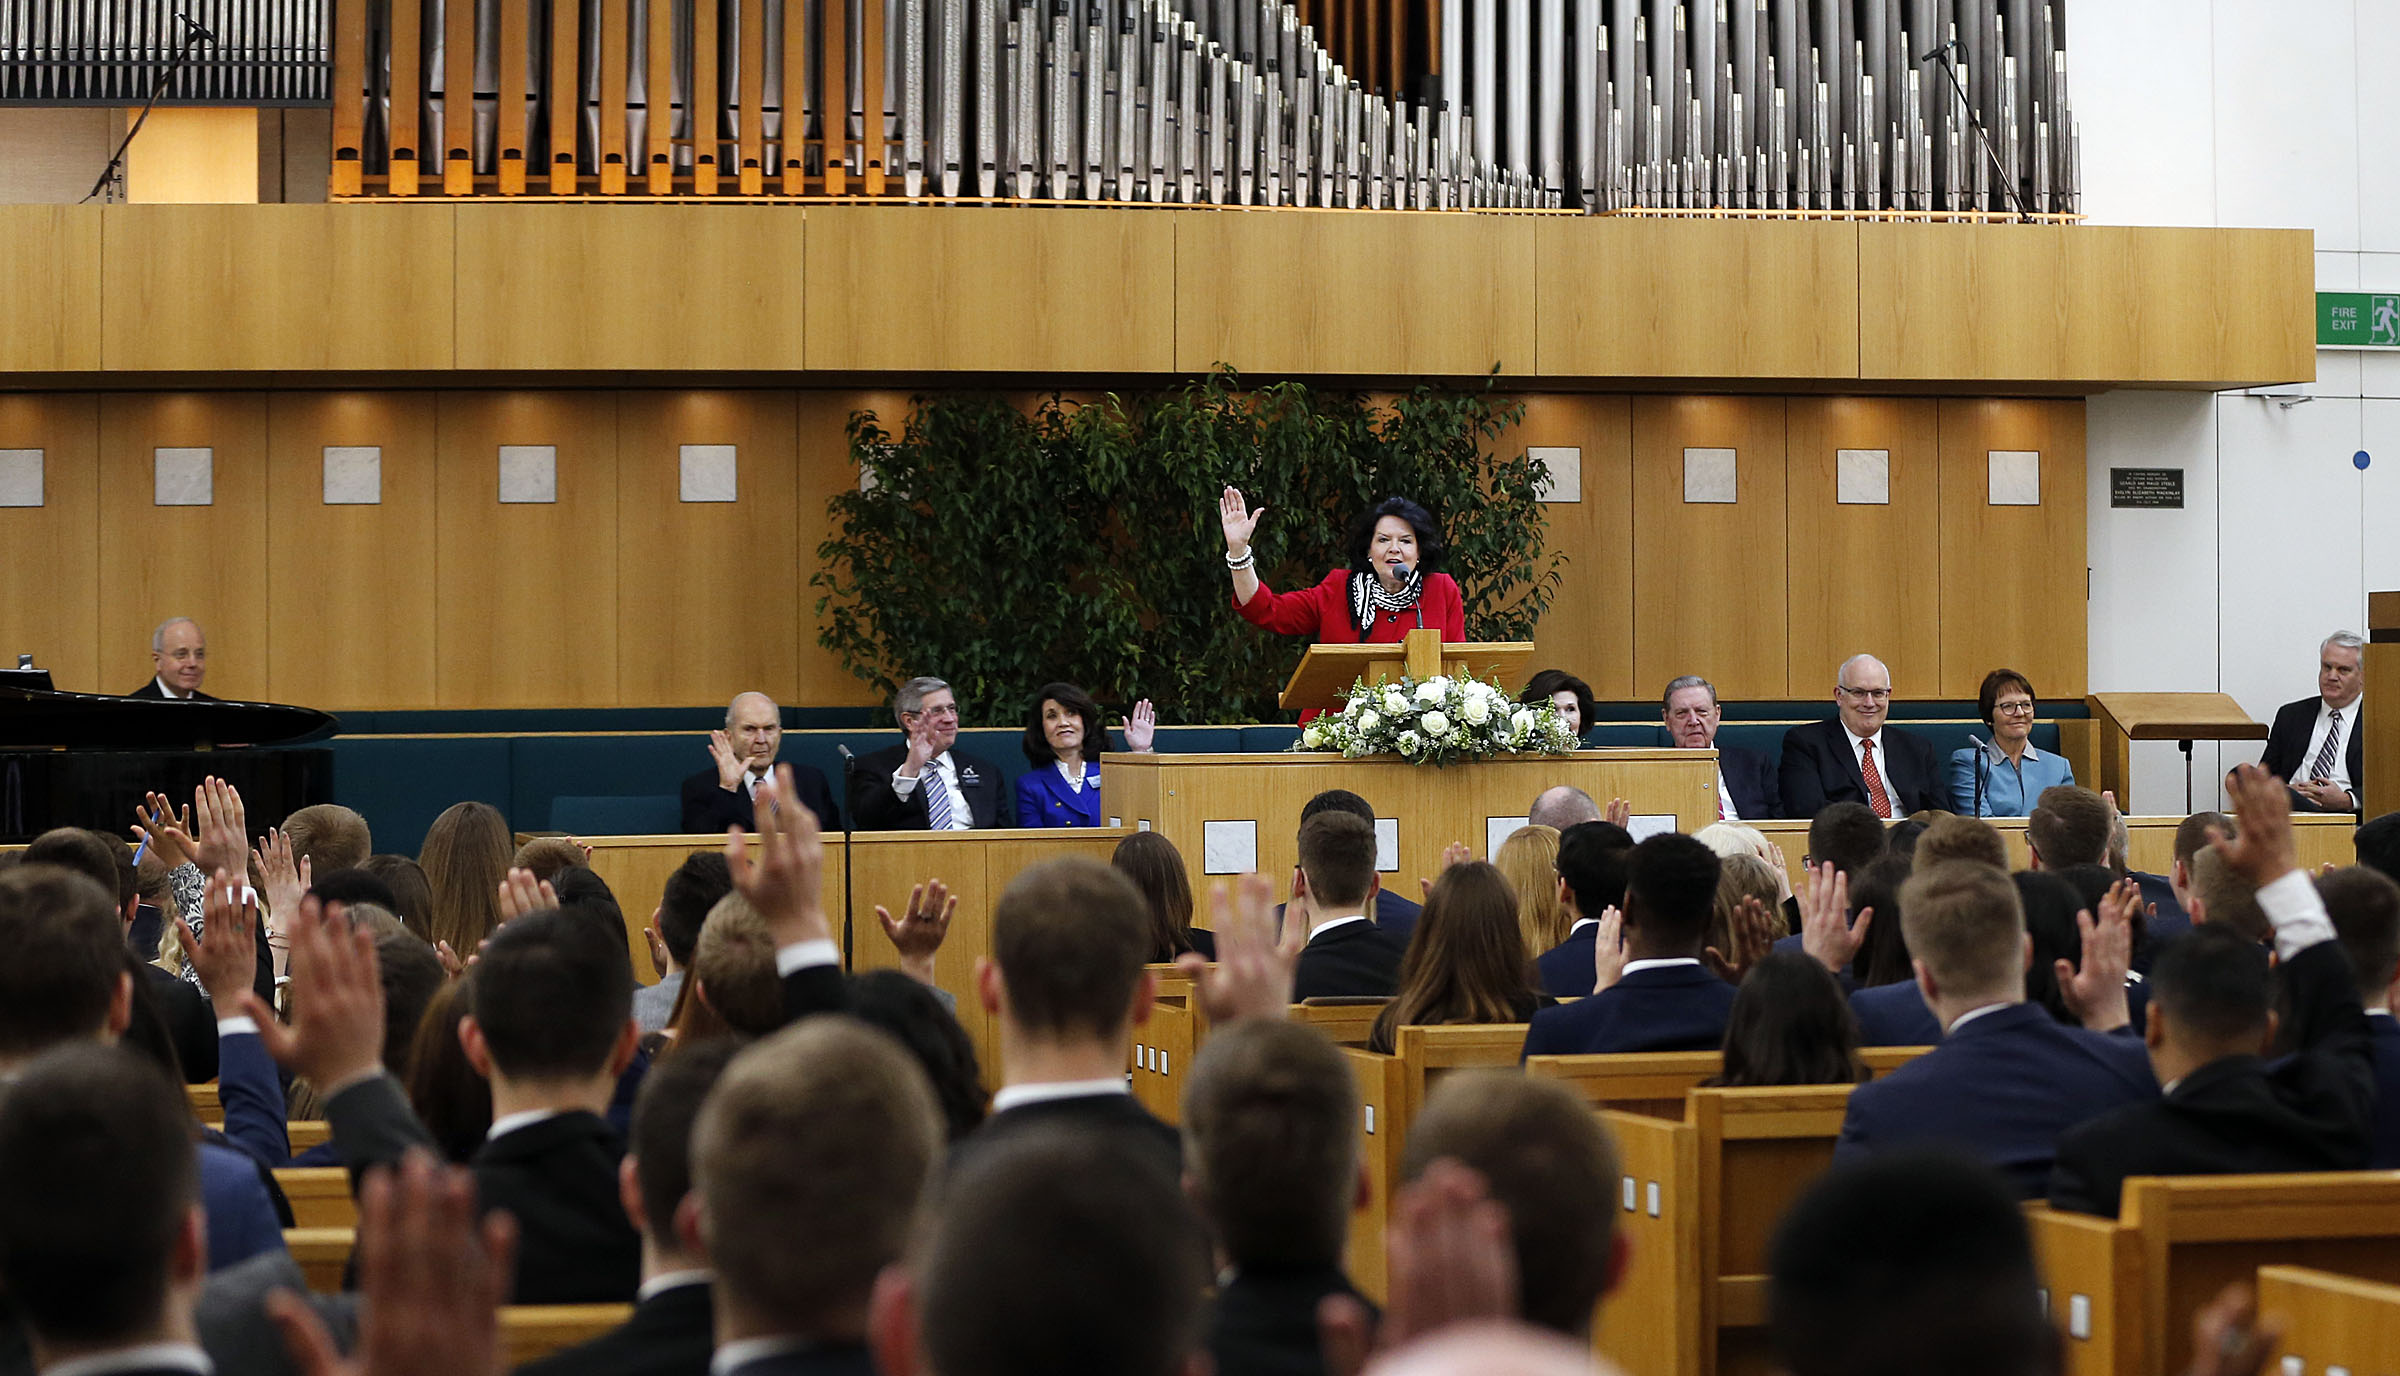 Sister Wendy Nelson asks a question of missionaries as she speaks at the Hyde Park Chapel in London on Thursday, April 12, 2018.